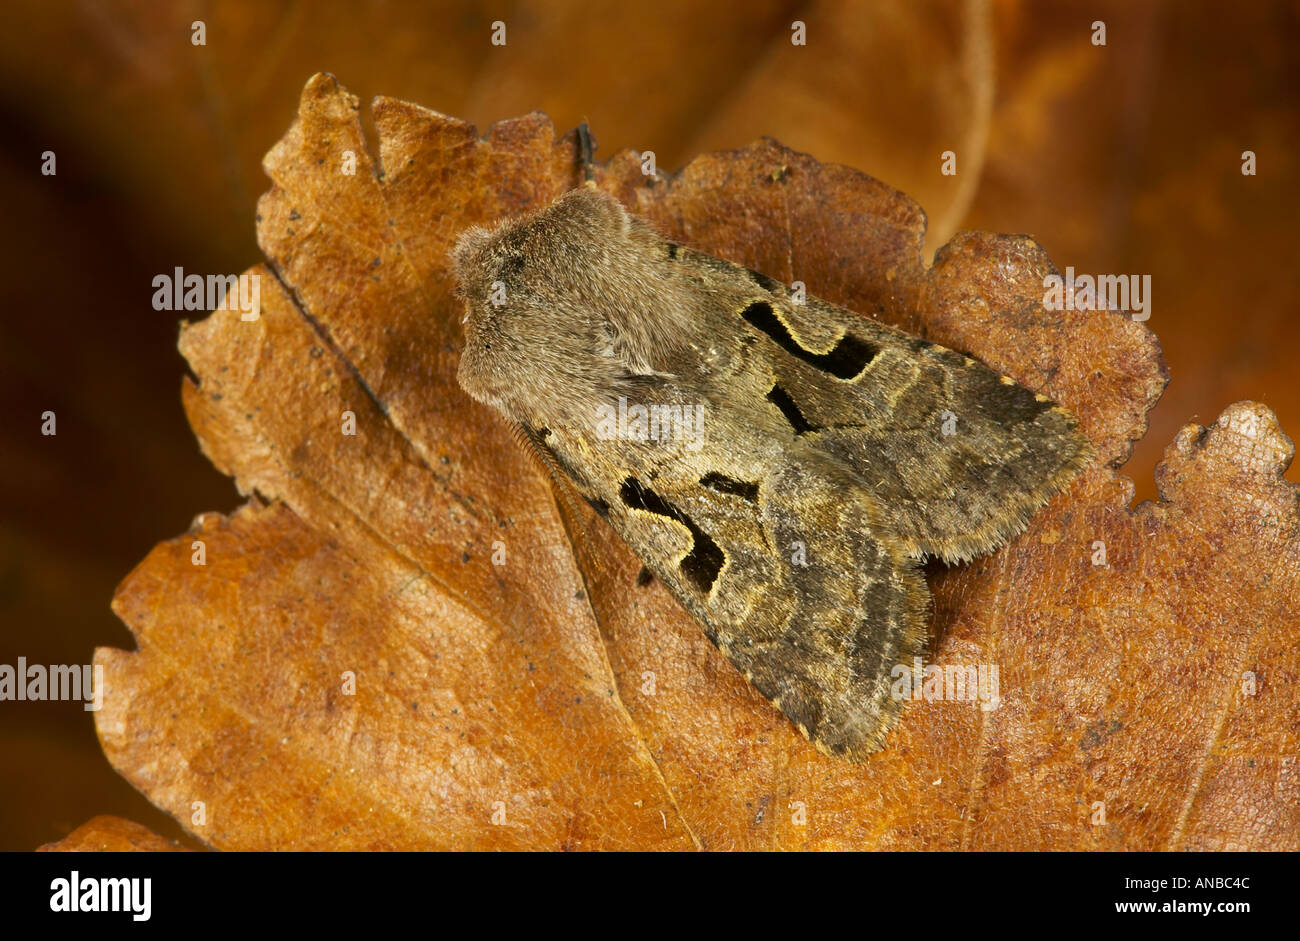 Hebrew Character Orthosia gothica at rest on brown leaves potton bedfordshire - Stock Image